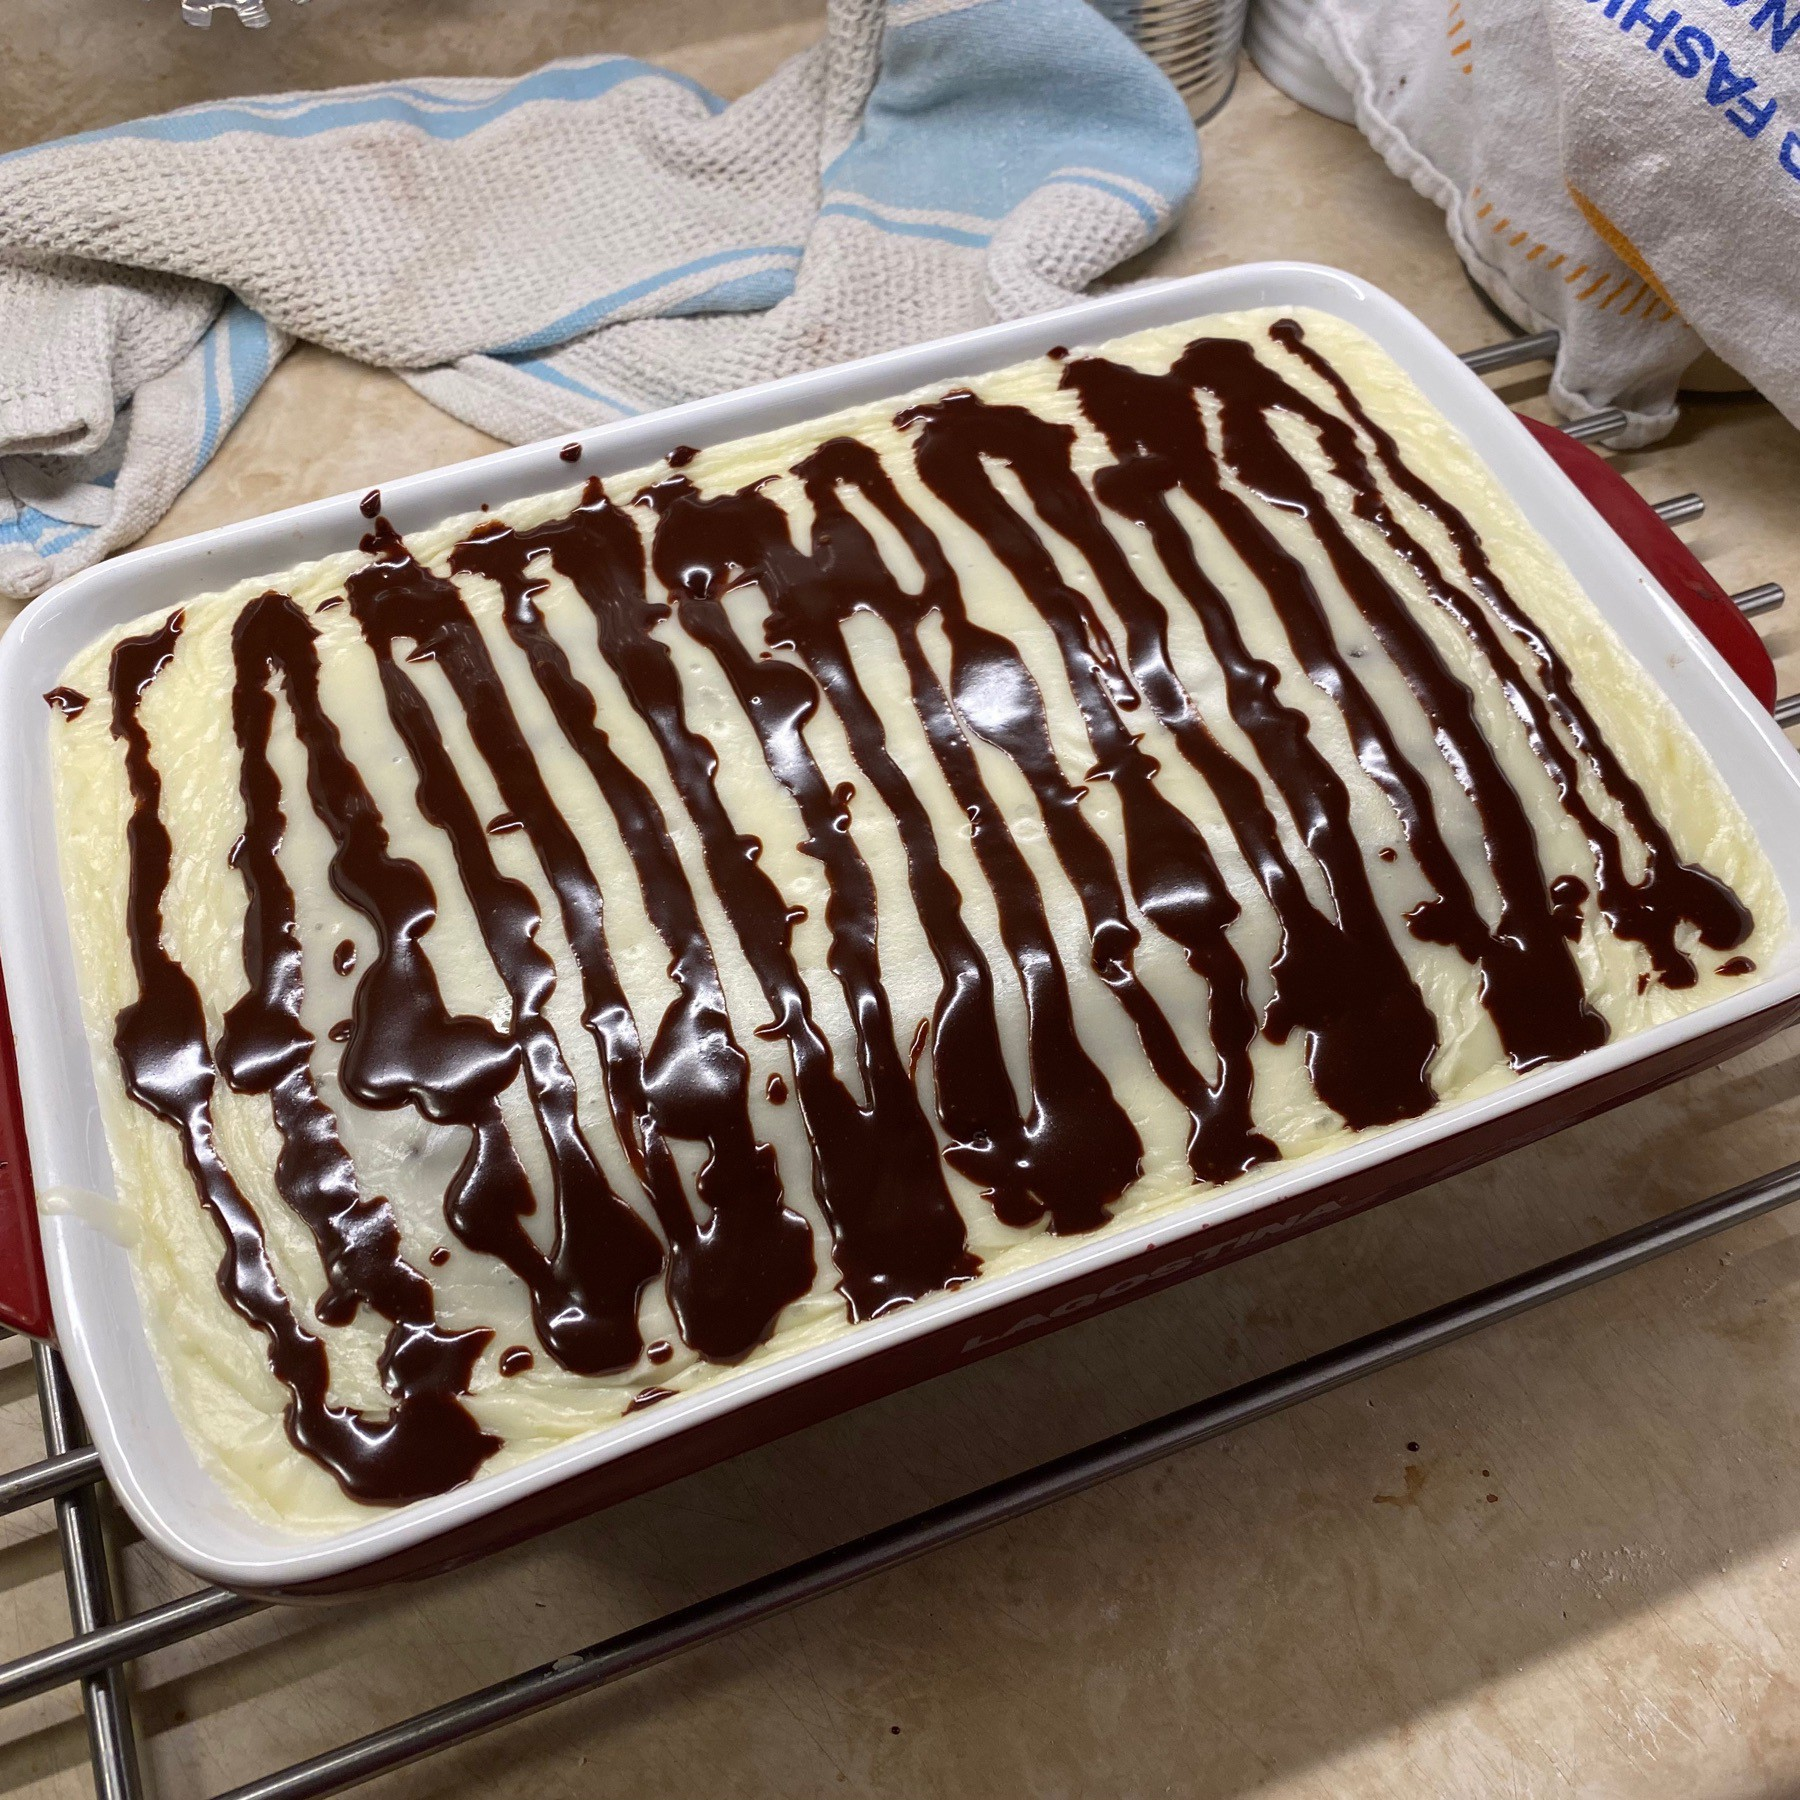 Chocolate cake in pan with icing on top.